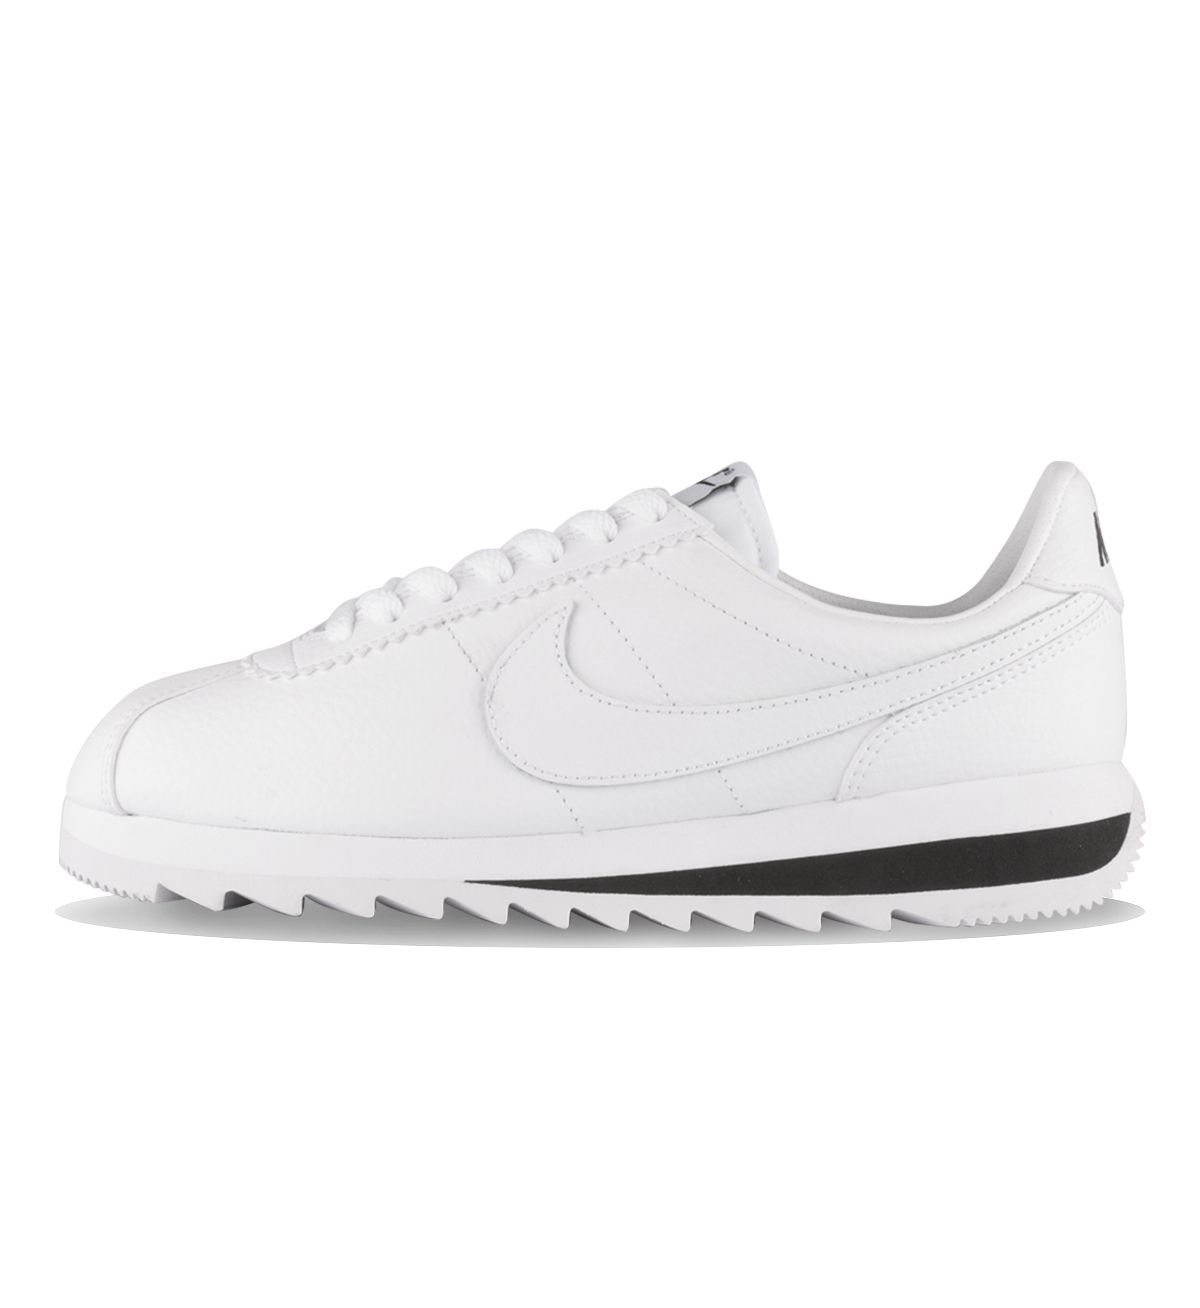 reputable site ead4a 6d902 Nike WMNS Classic Cortez Epic PRM White  White  Black - Nike Womens The  WMNS